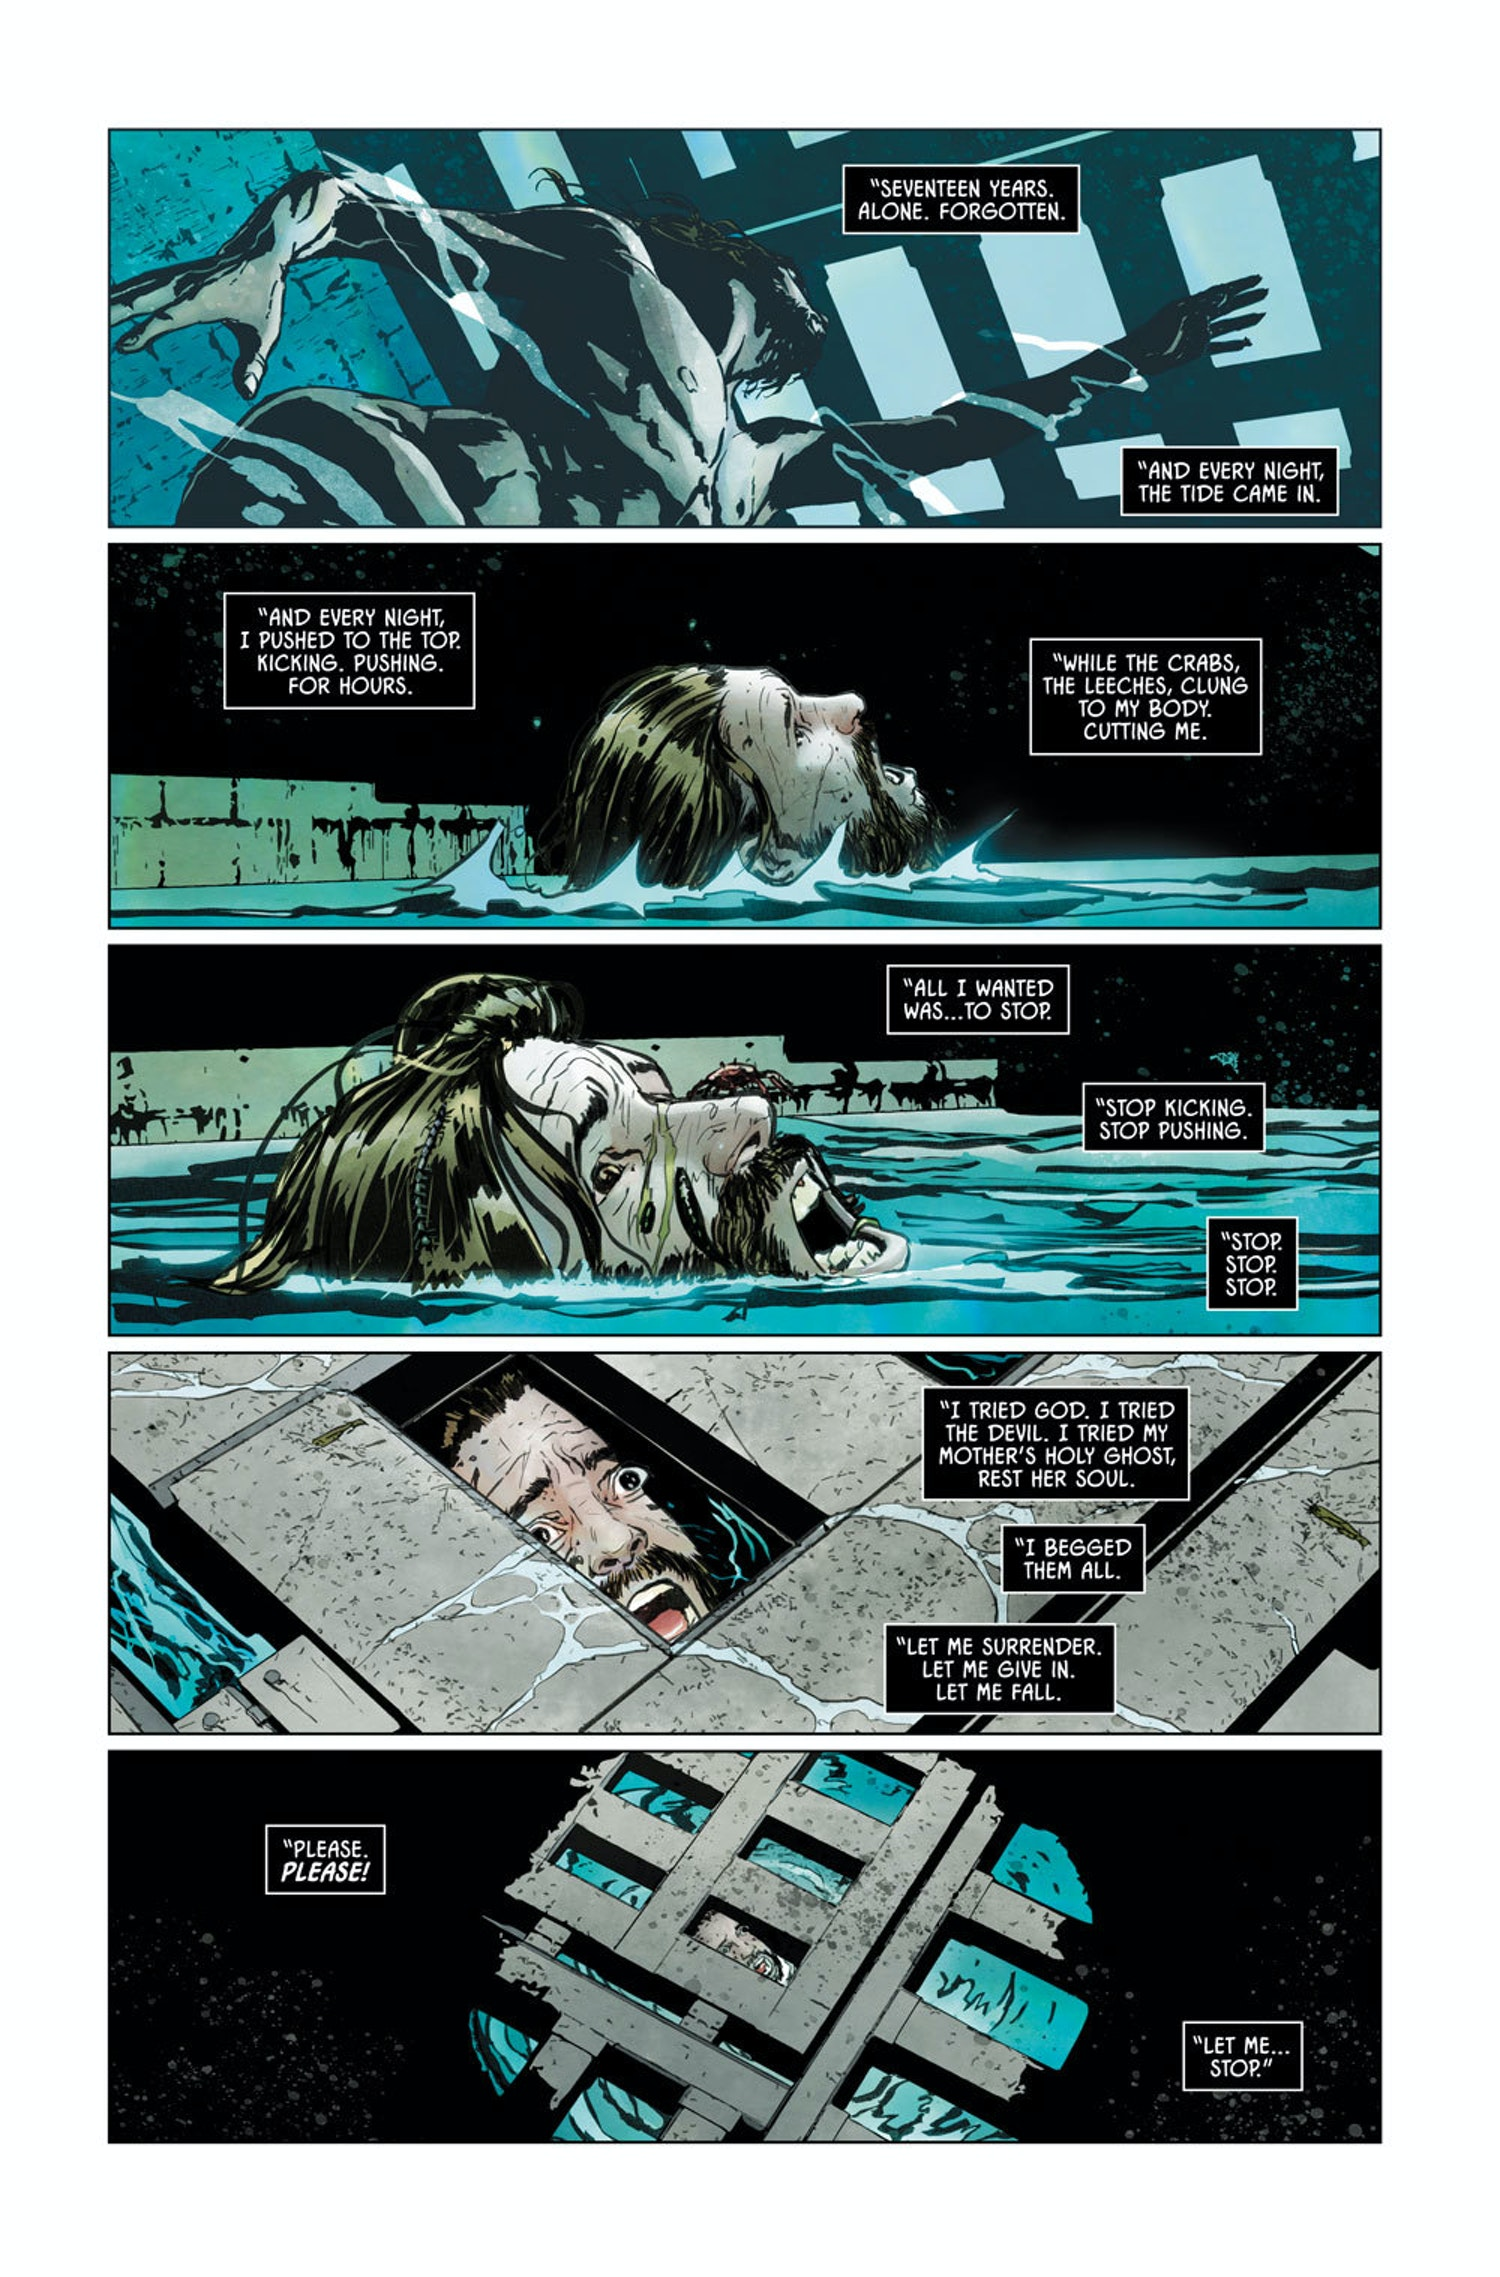 Bane in Batman #9